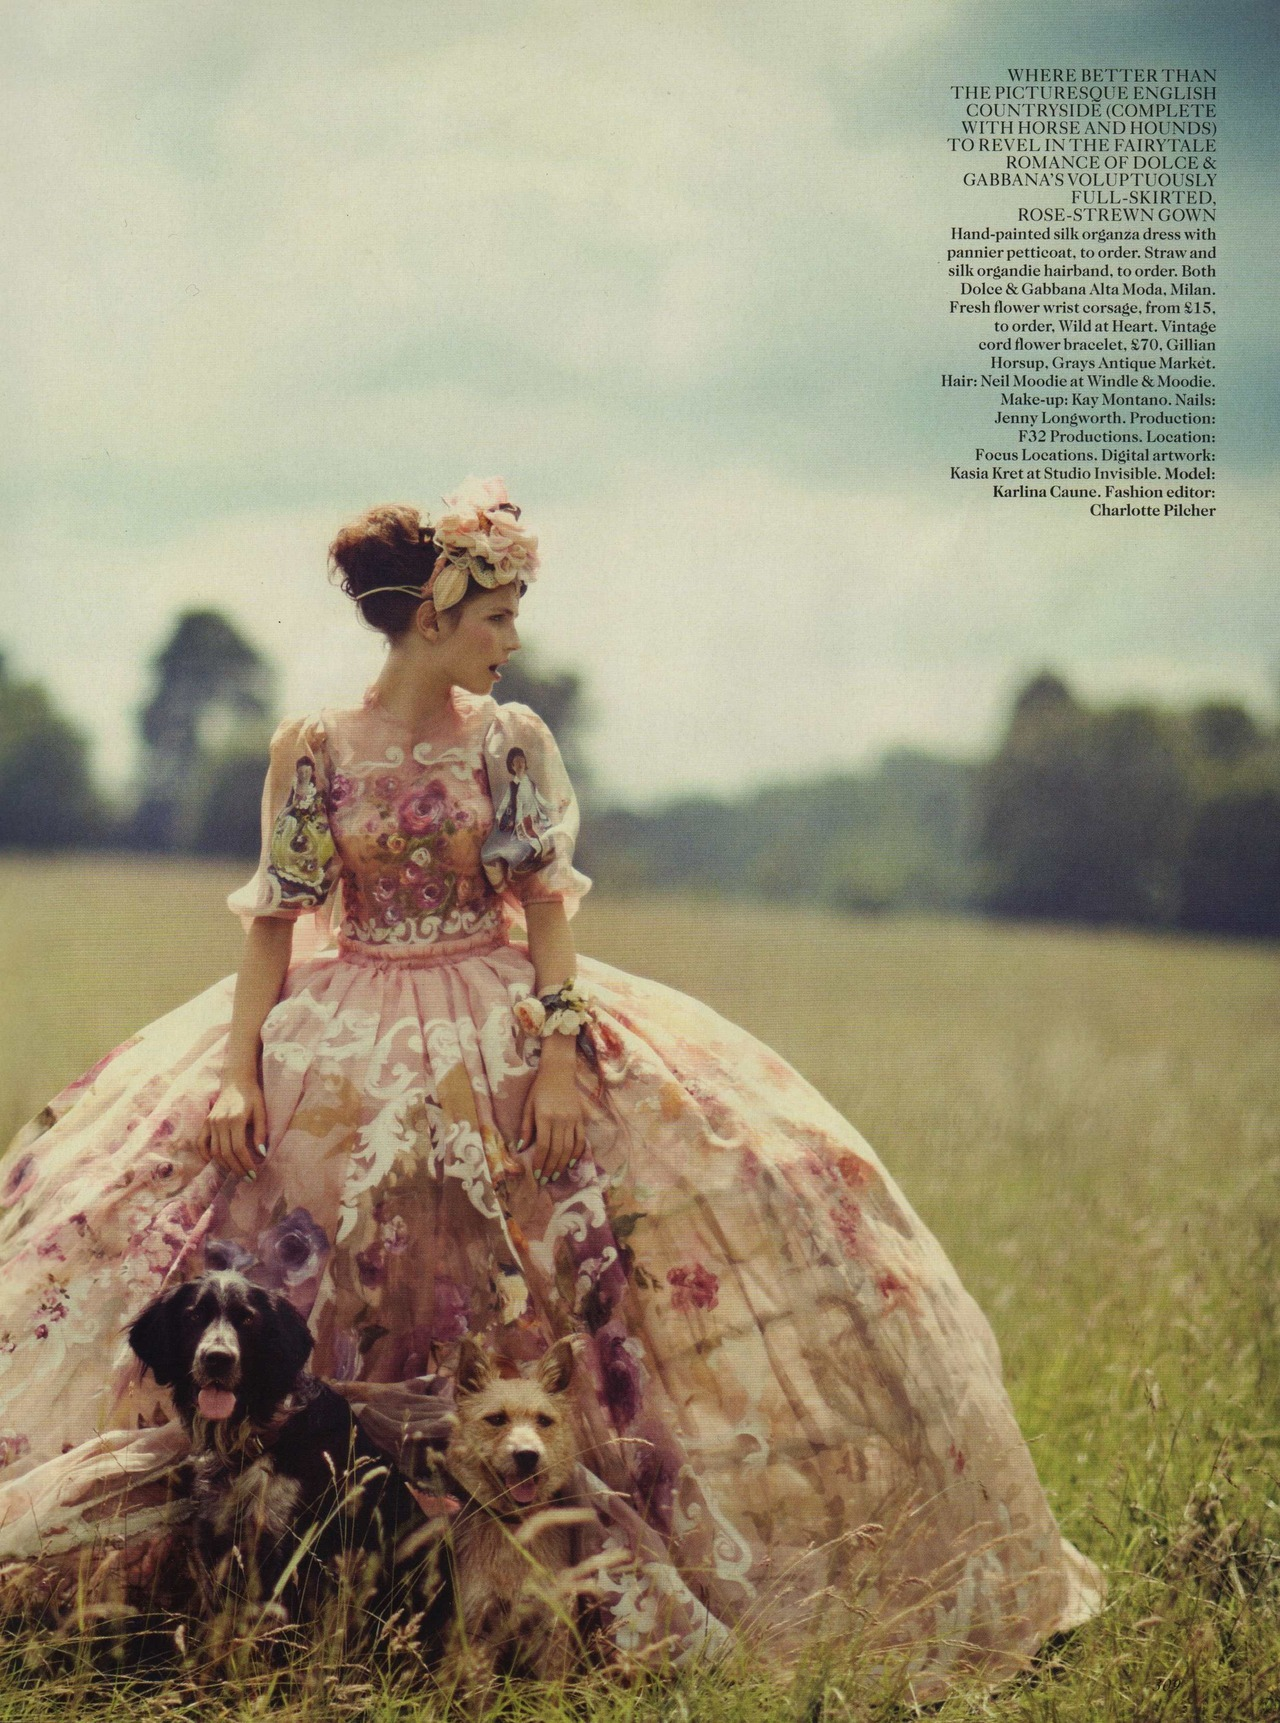 Karlina Caune - Vogue UK by Boo George, October 2012